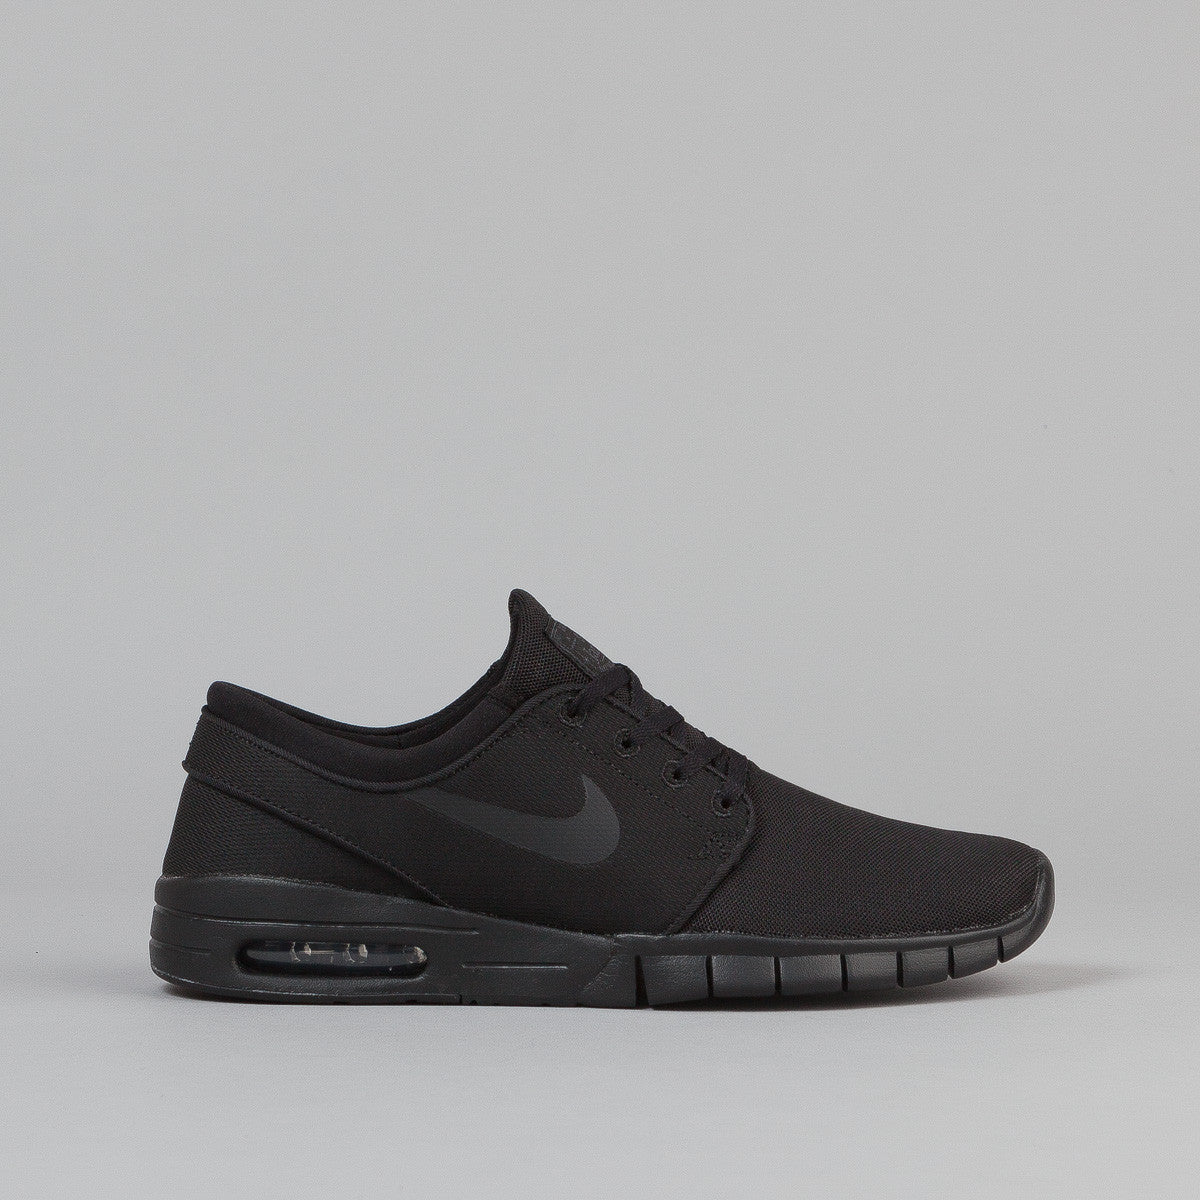 nike sb stefan janoski max shoes black black anthracite black flatspot. Black Bedroom Furniture Sets. Home Design Ideas